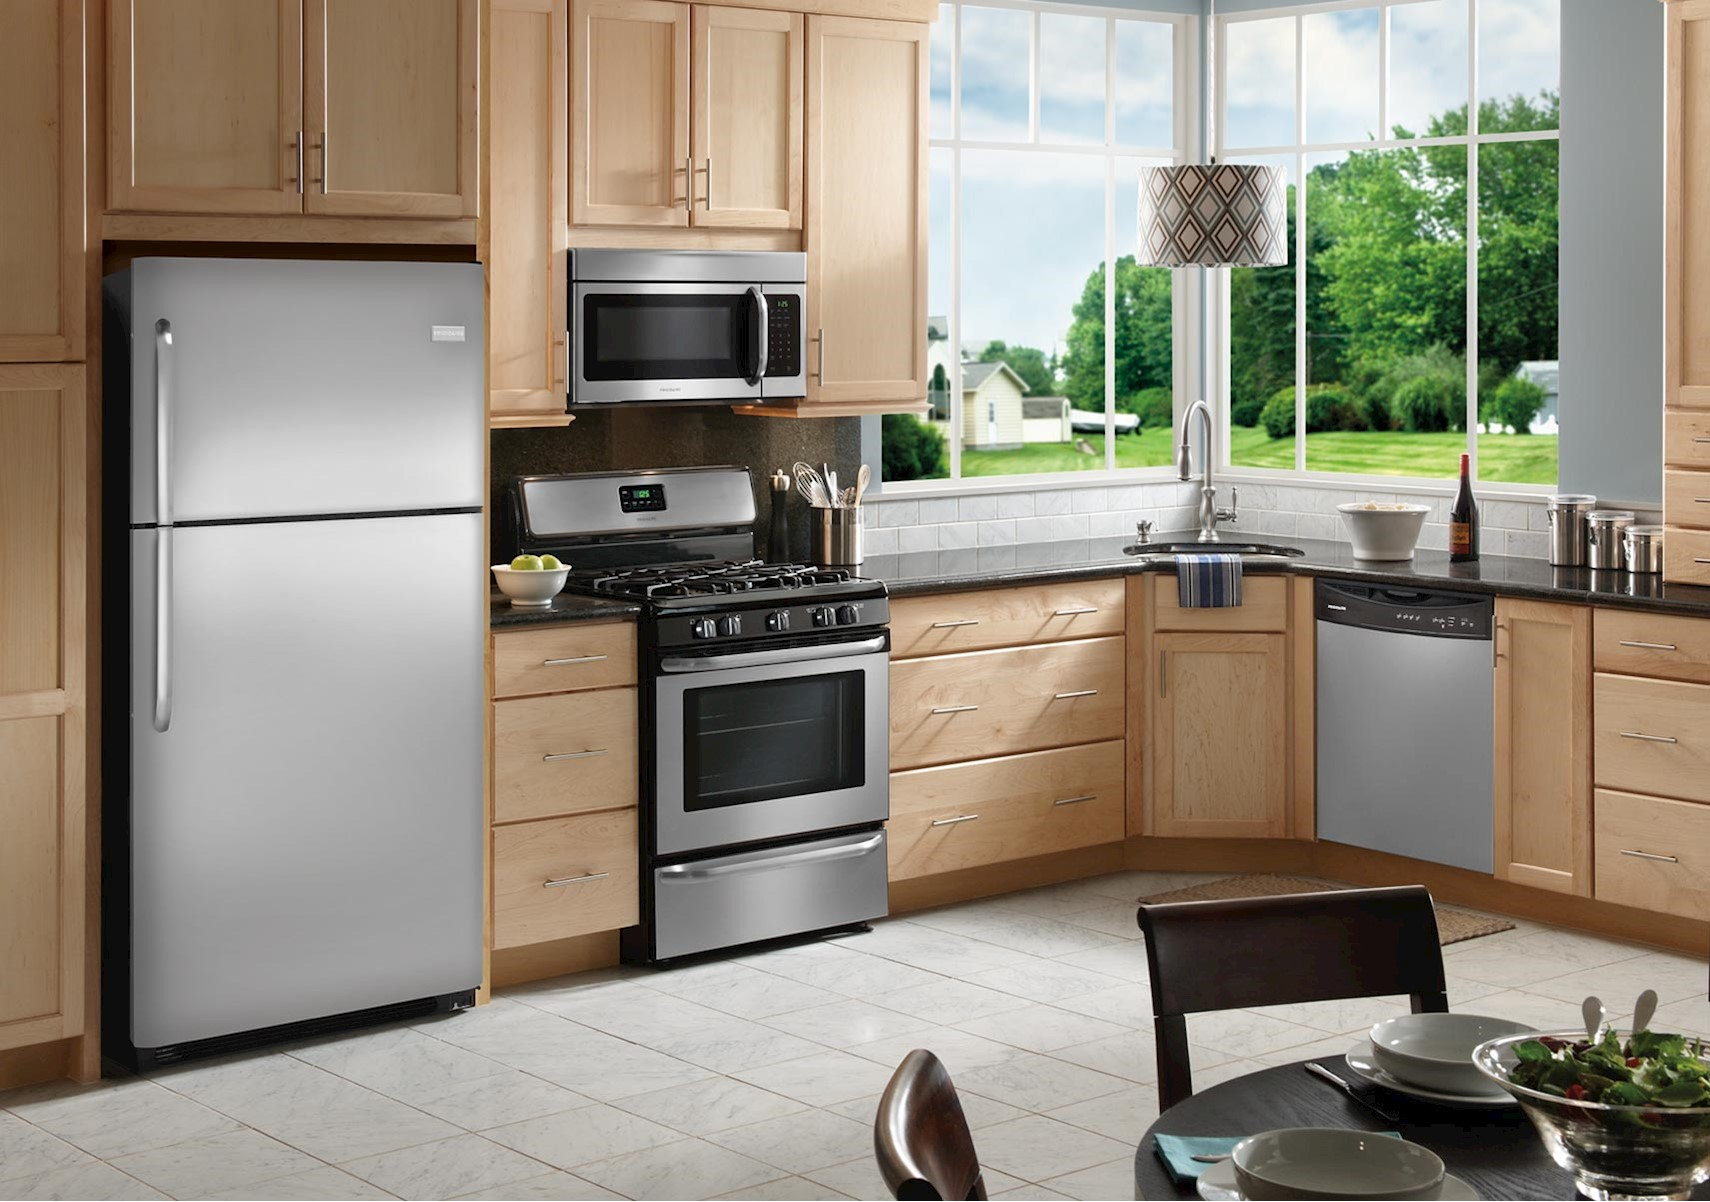 Uncategorized Frigidaire Kitchen Appliances lacks frigidaire stainless steel kitchen appliance package with gas stove